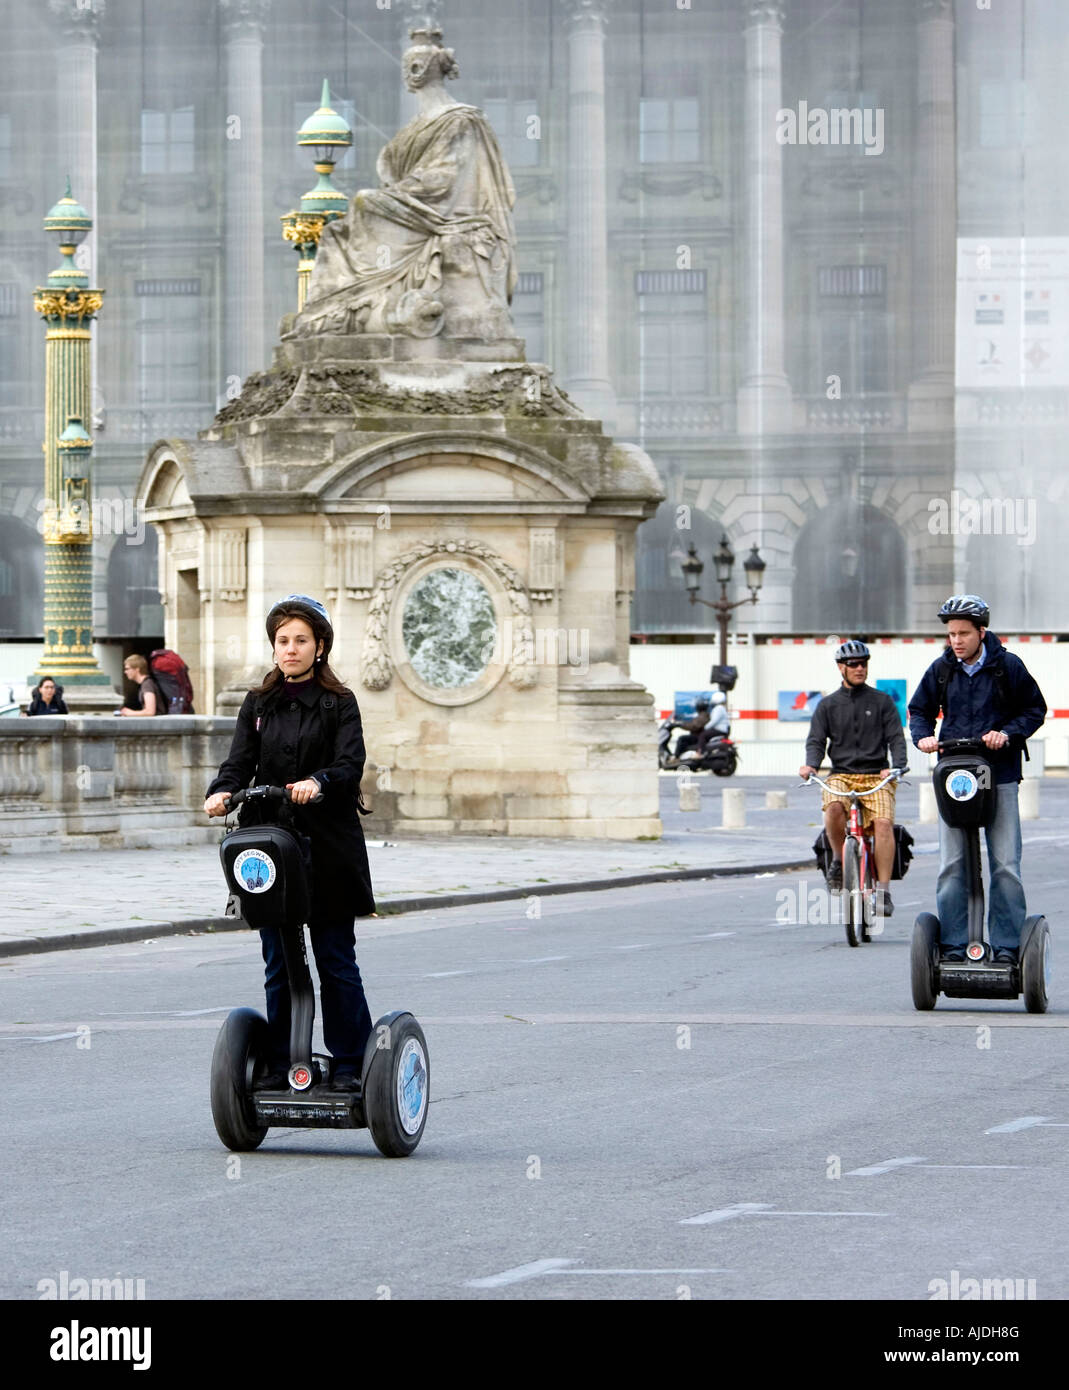 Tourists on Segway personal transporters in Place de la Concorde Stock Photo